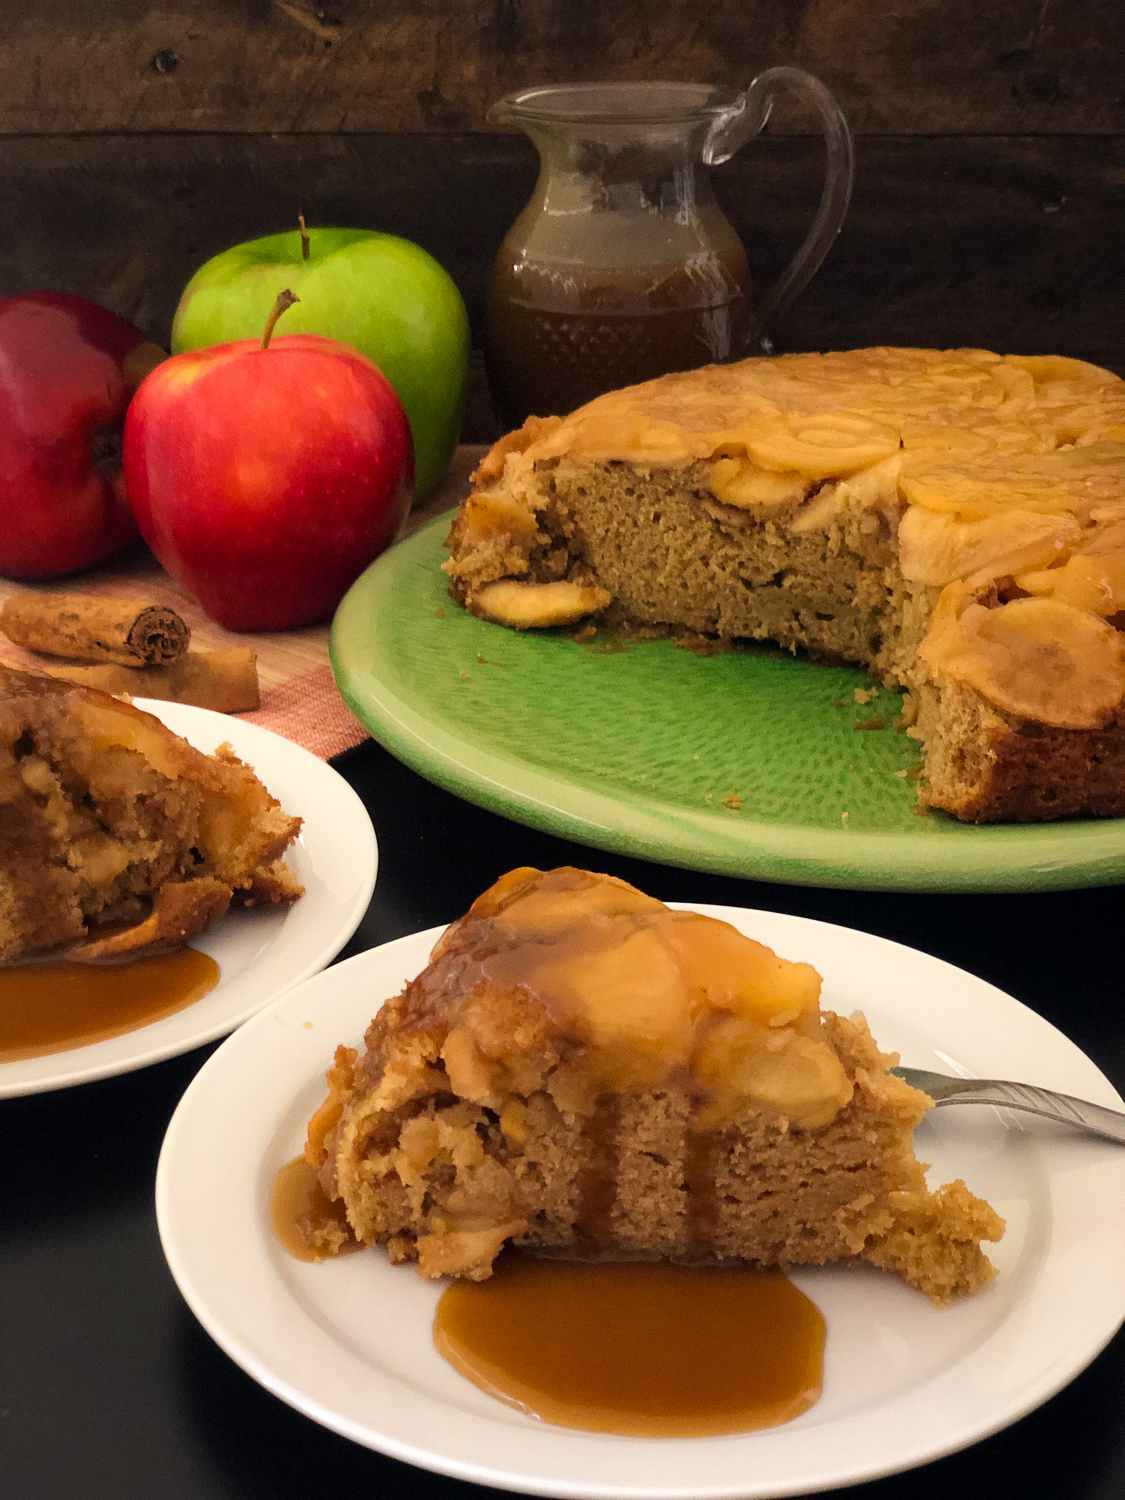 Slices of Dutch oven apple cake on white plates with caramel sauce poured over; remaining cake on green platter with pitcher of caramel sauce in the background.